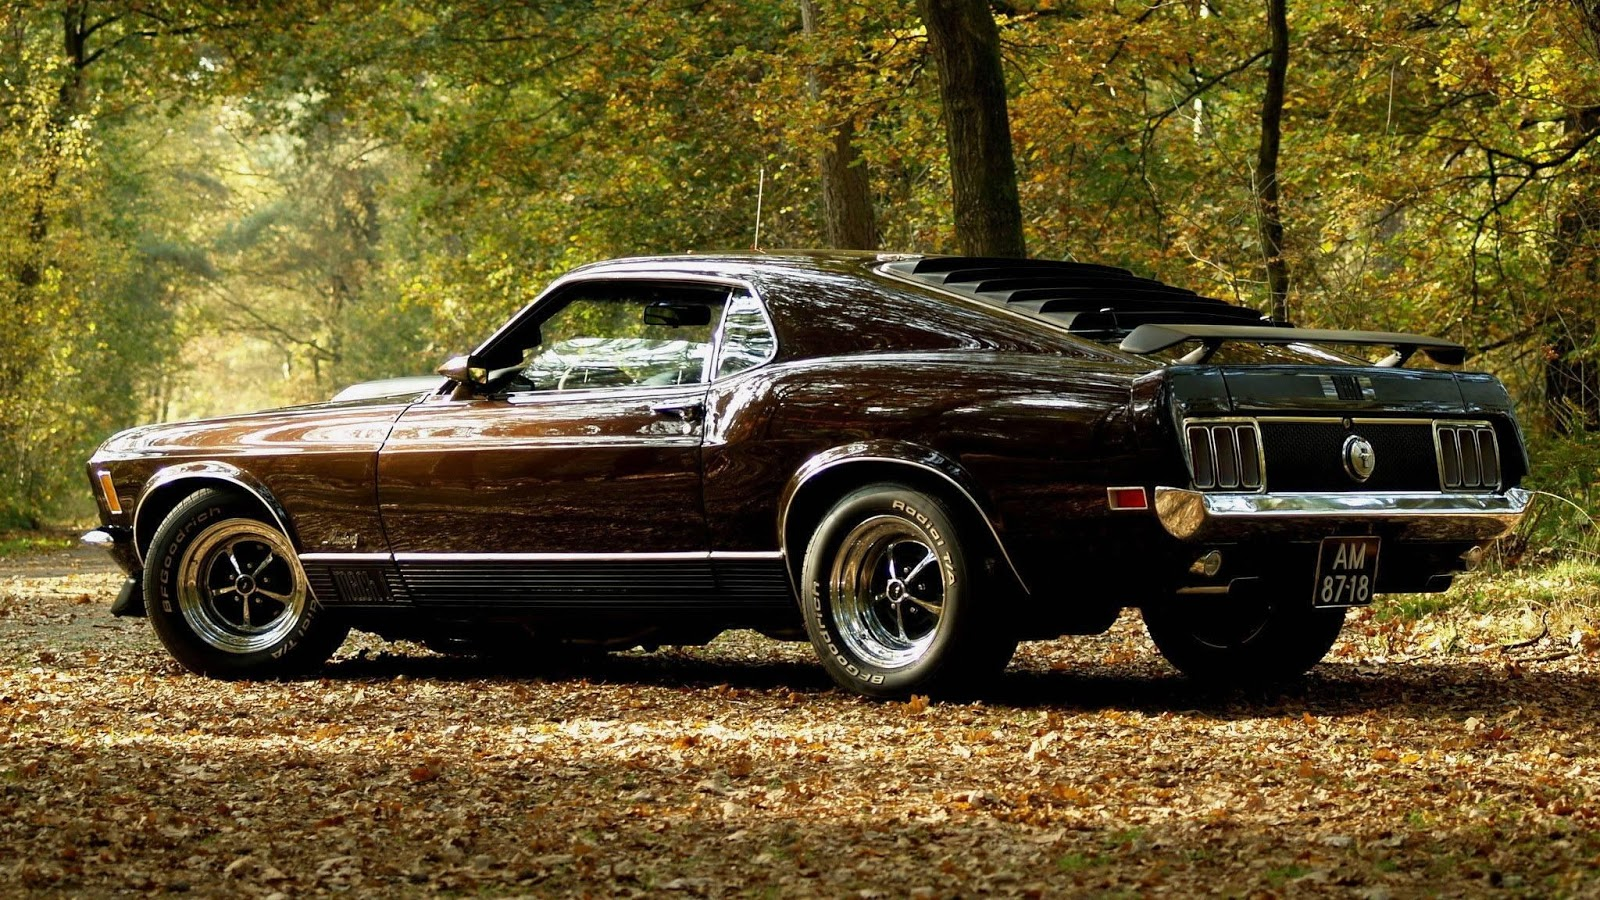 American Muscle Car Wallpaper 1 0 Apk Download Android